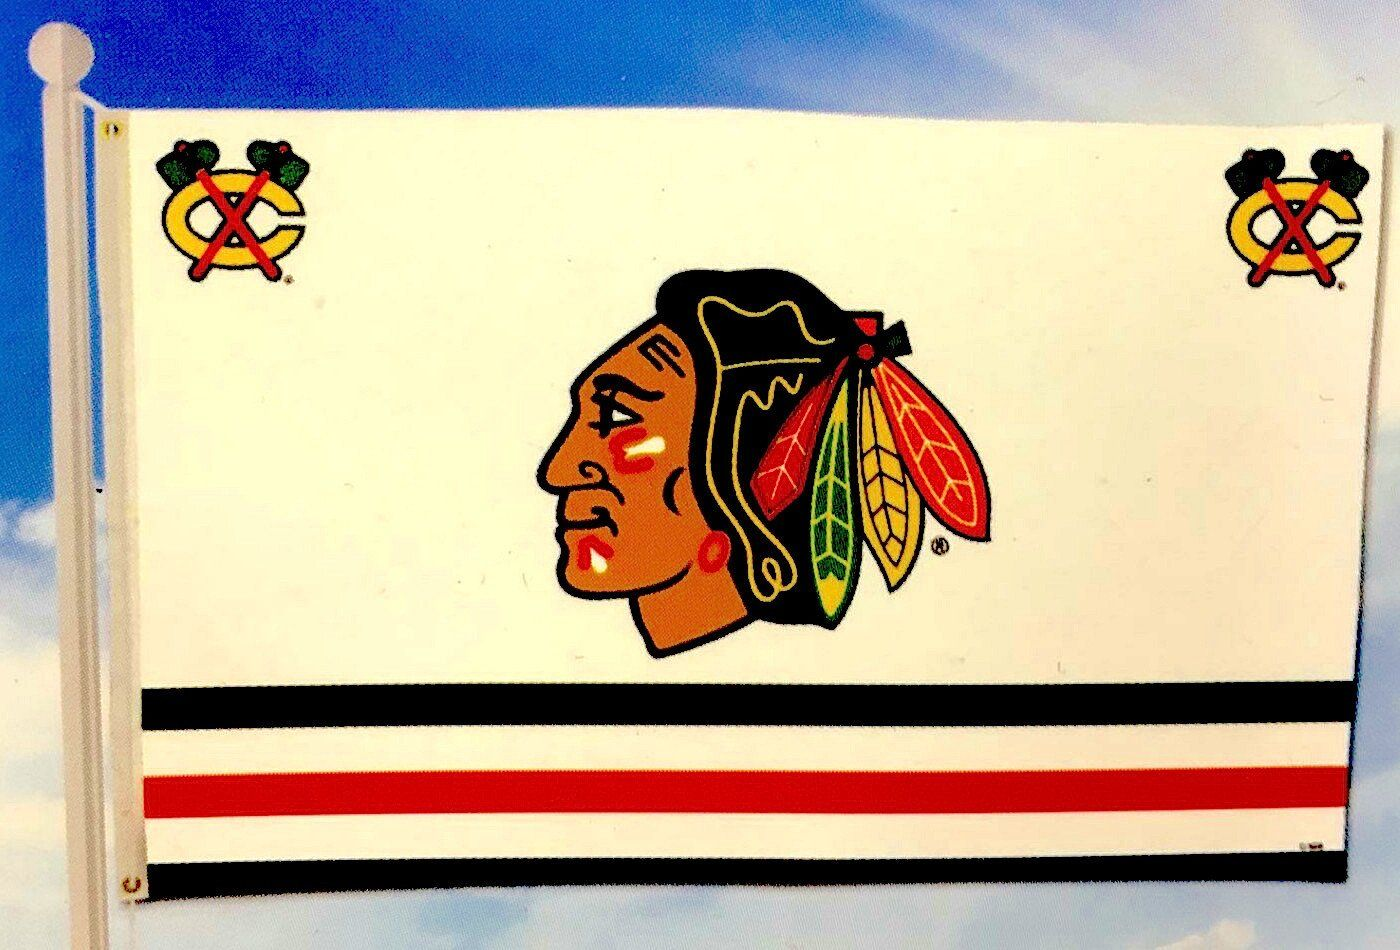 Chicago Blackhawks 3X5 Banner Flag Indian Head And Tomahawks By Rico ...